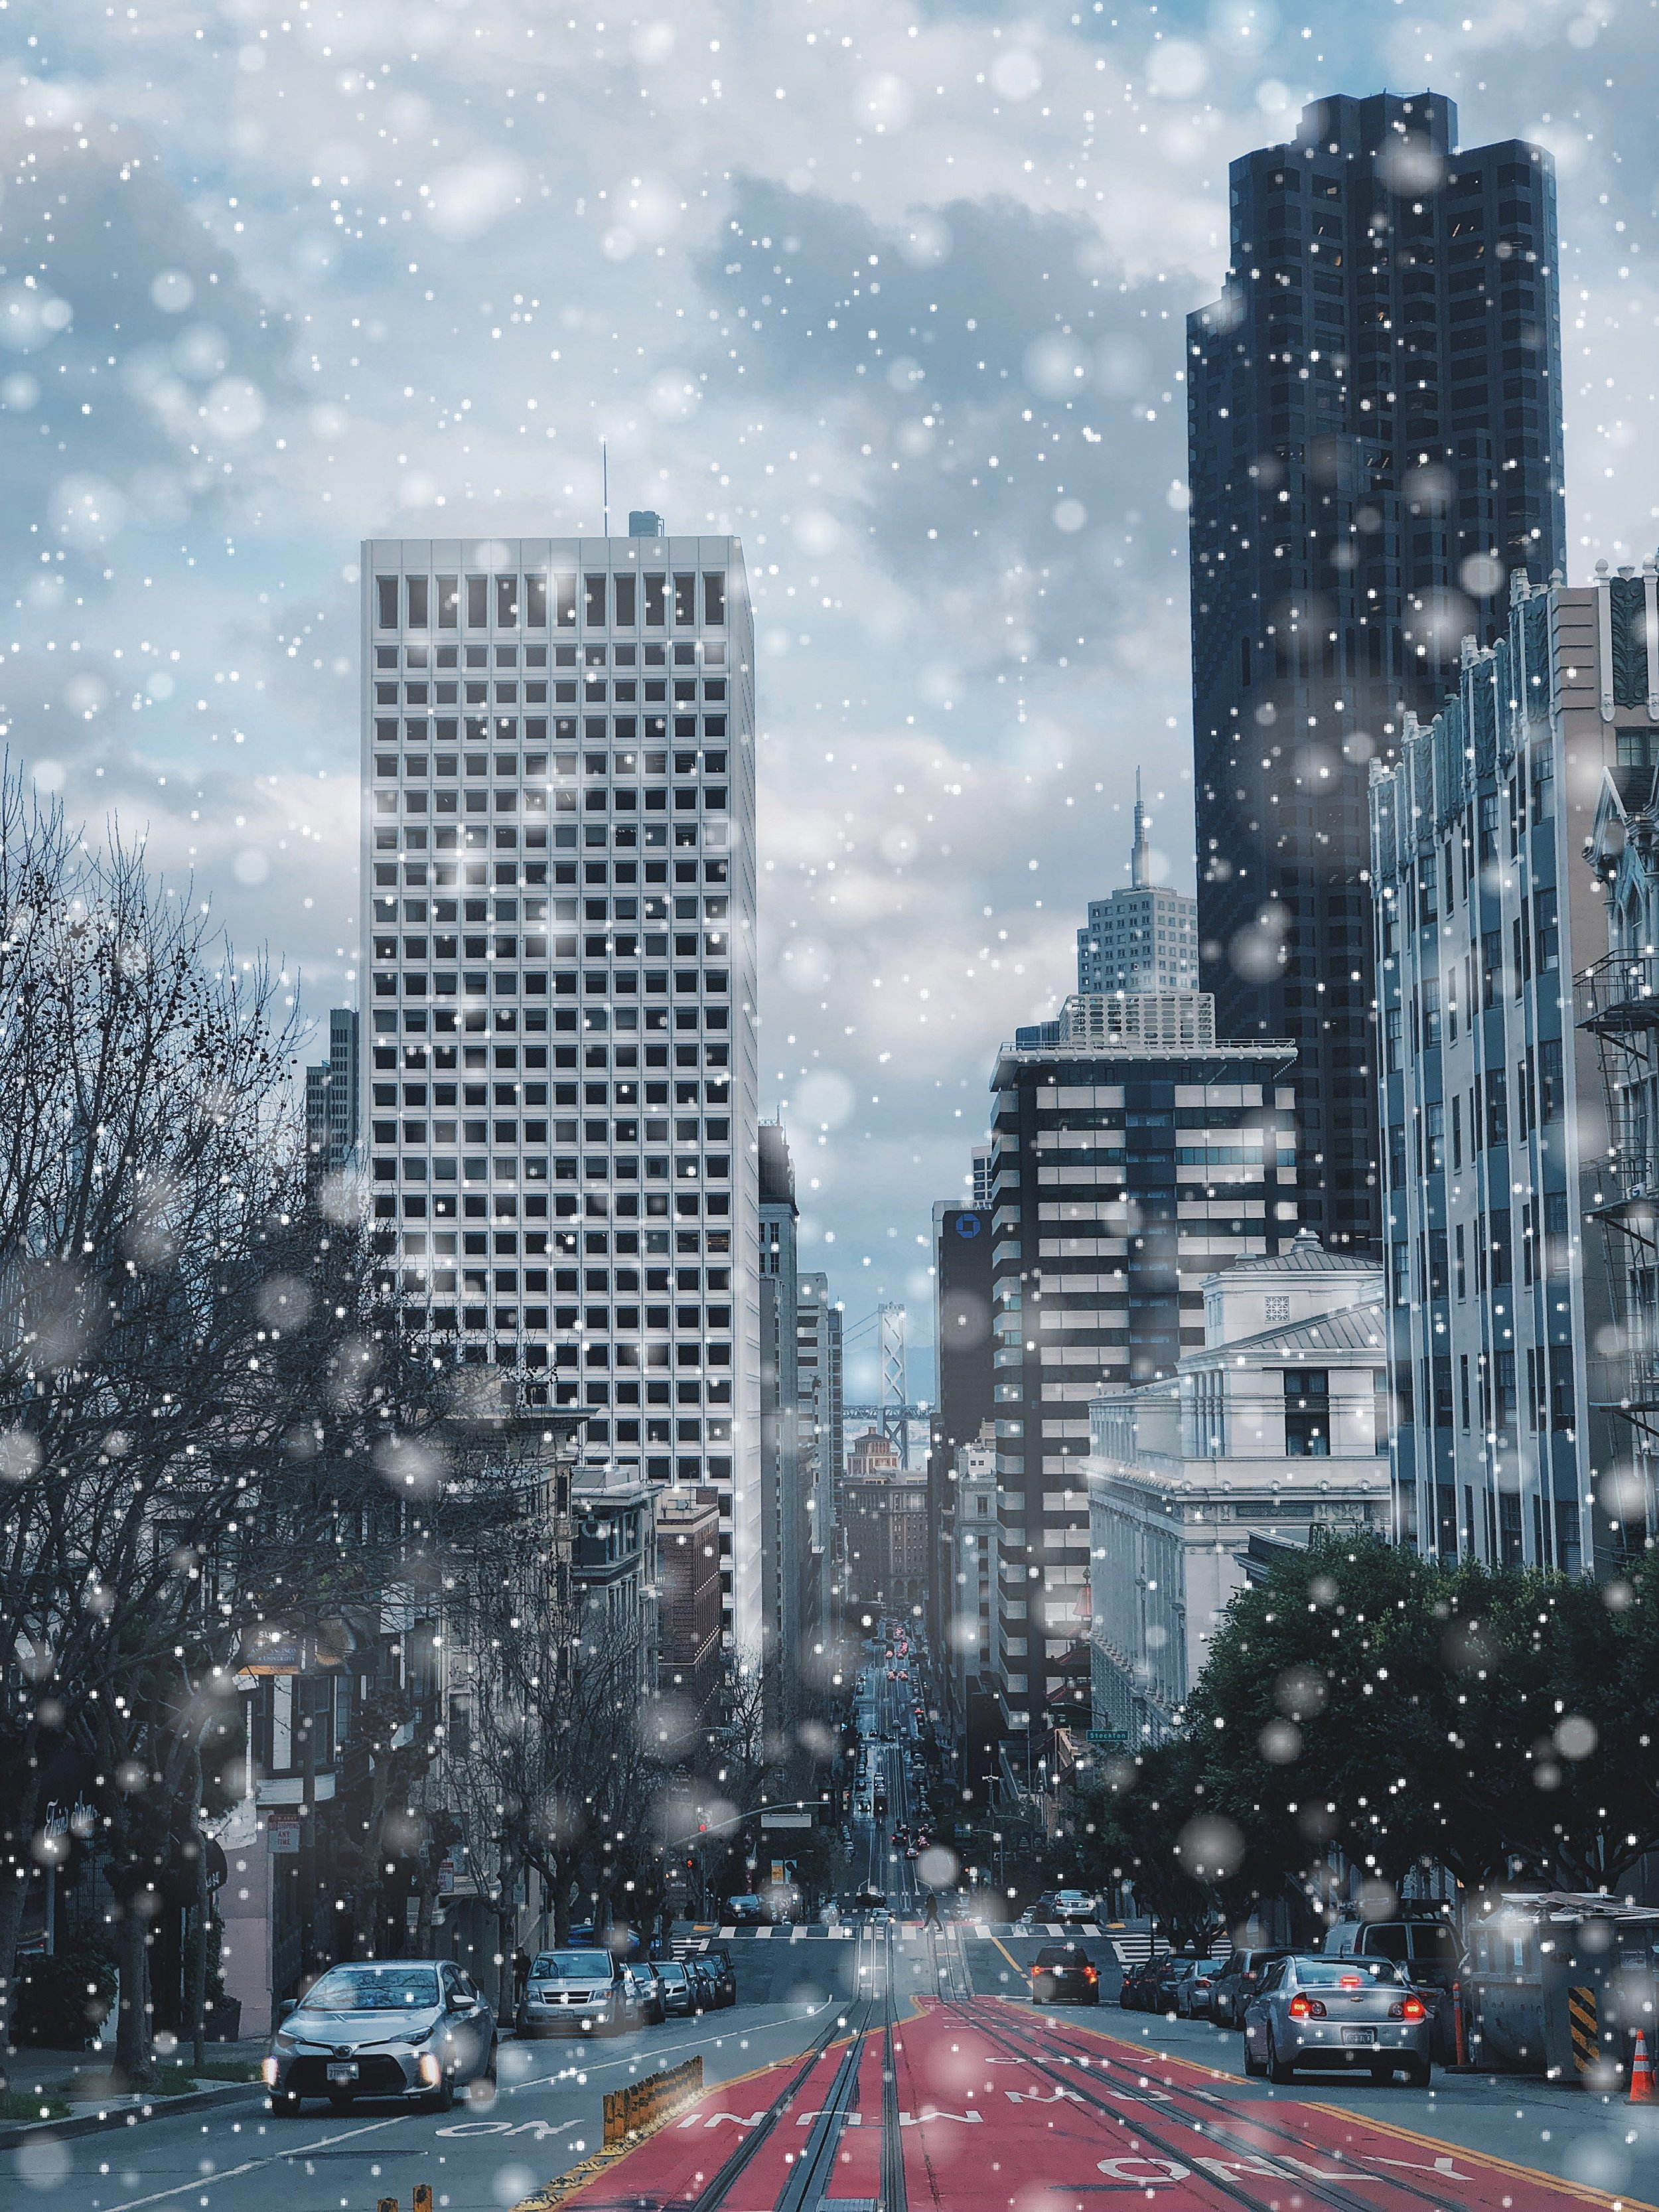 What if in the Bay Area, instead of rain we got snow?  -